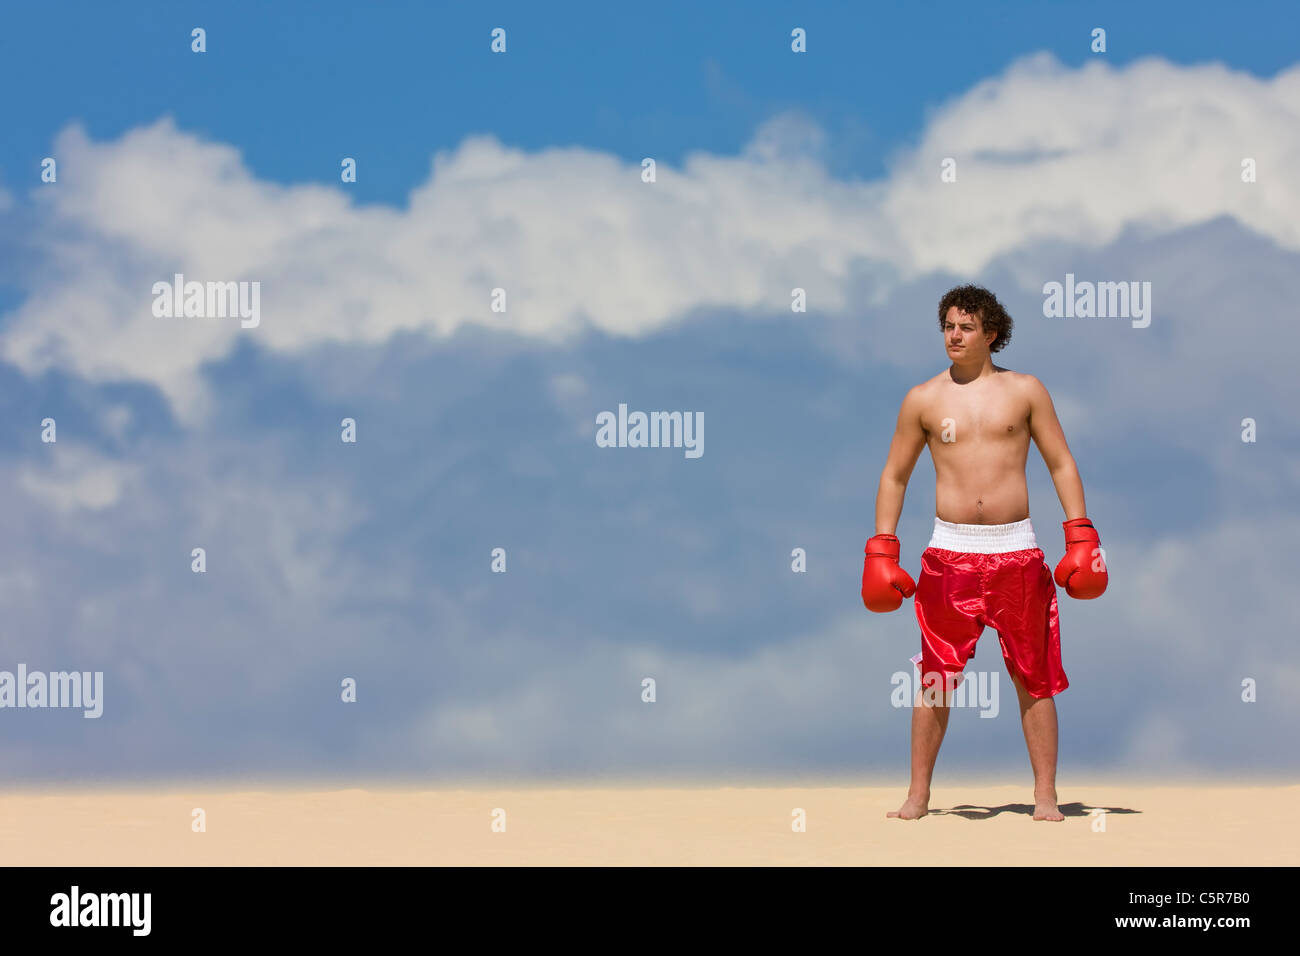 Boxer standing on top of the World. - Stock Image